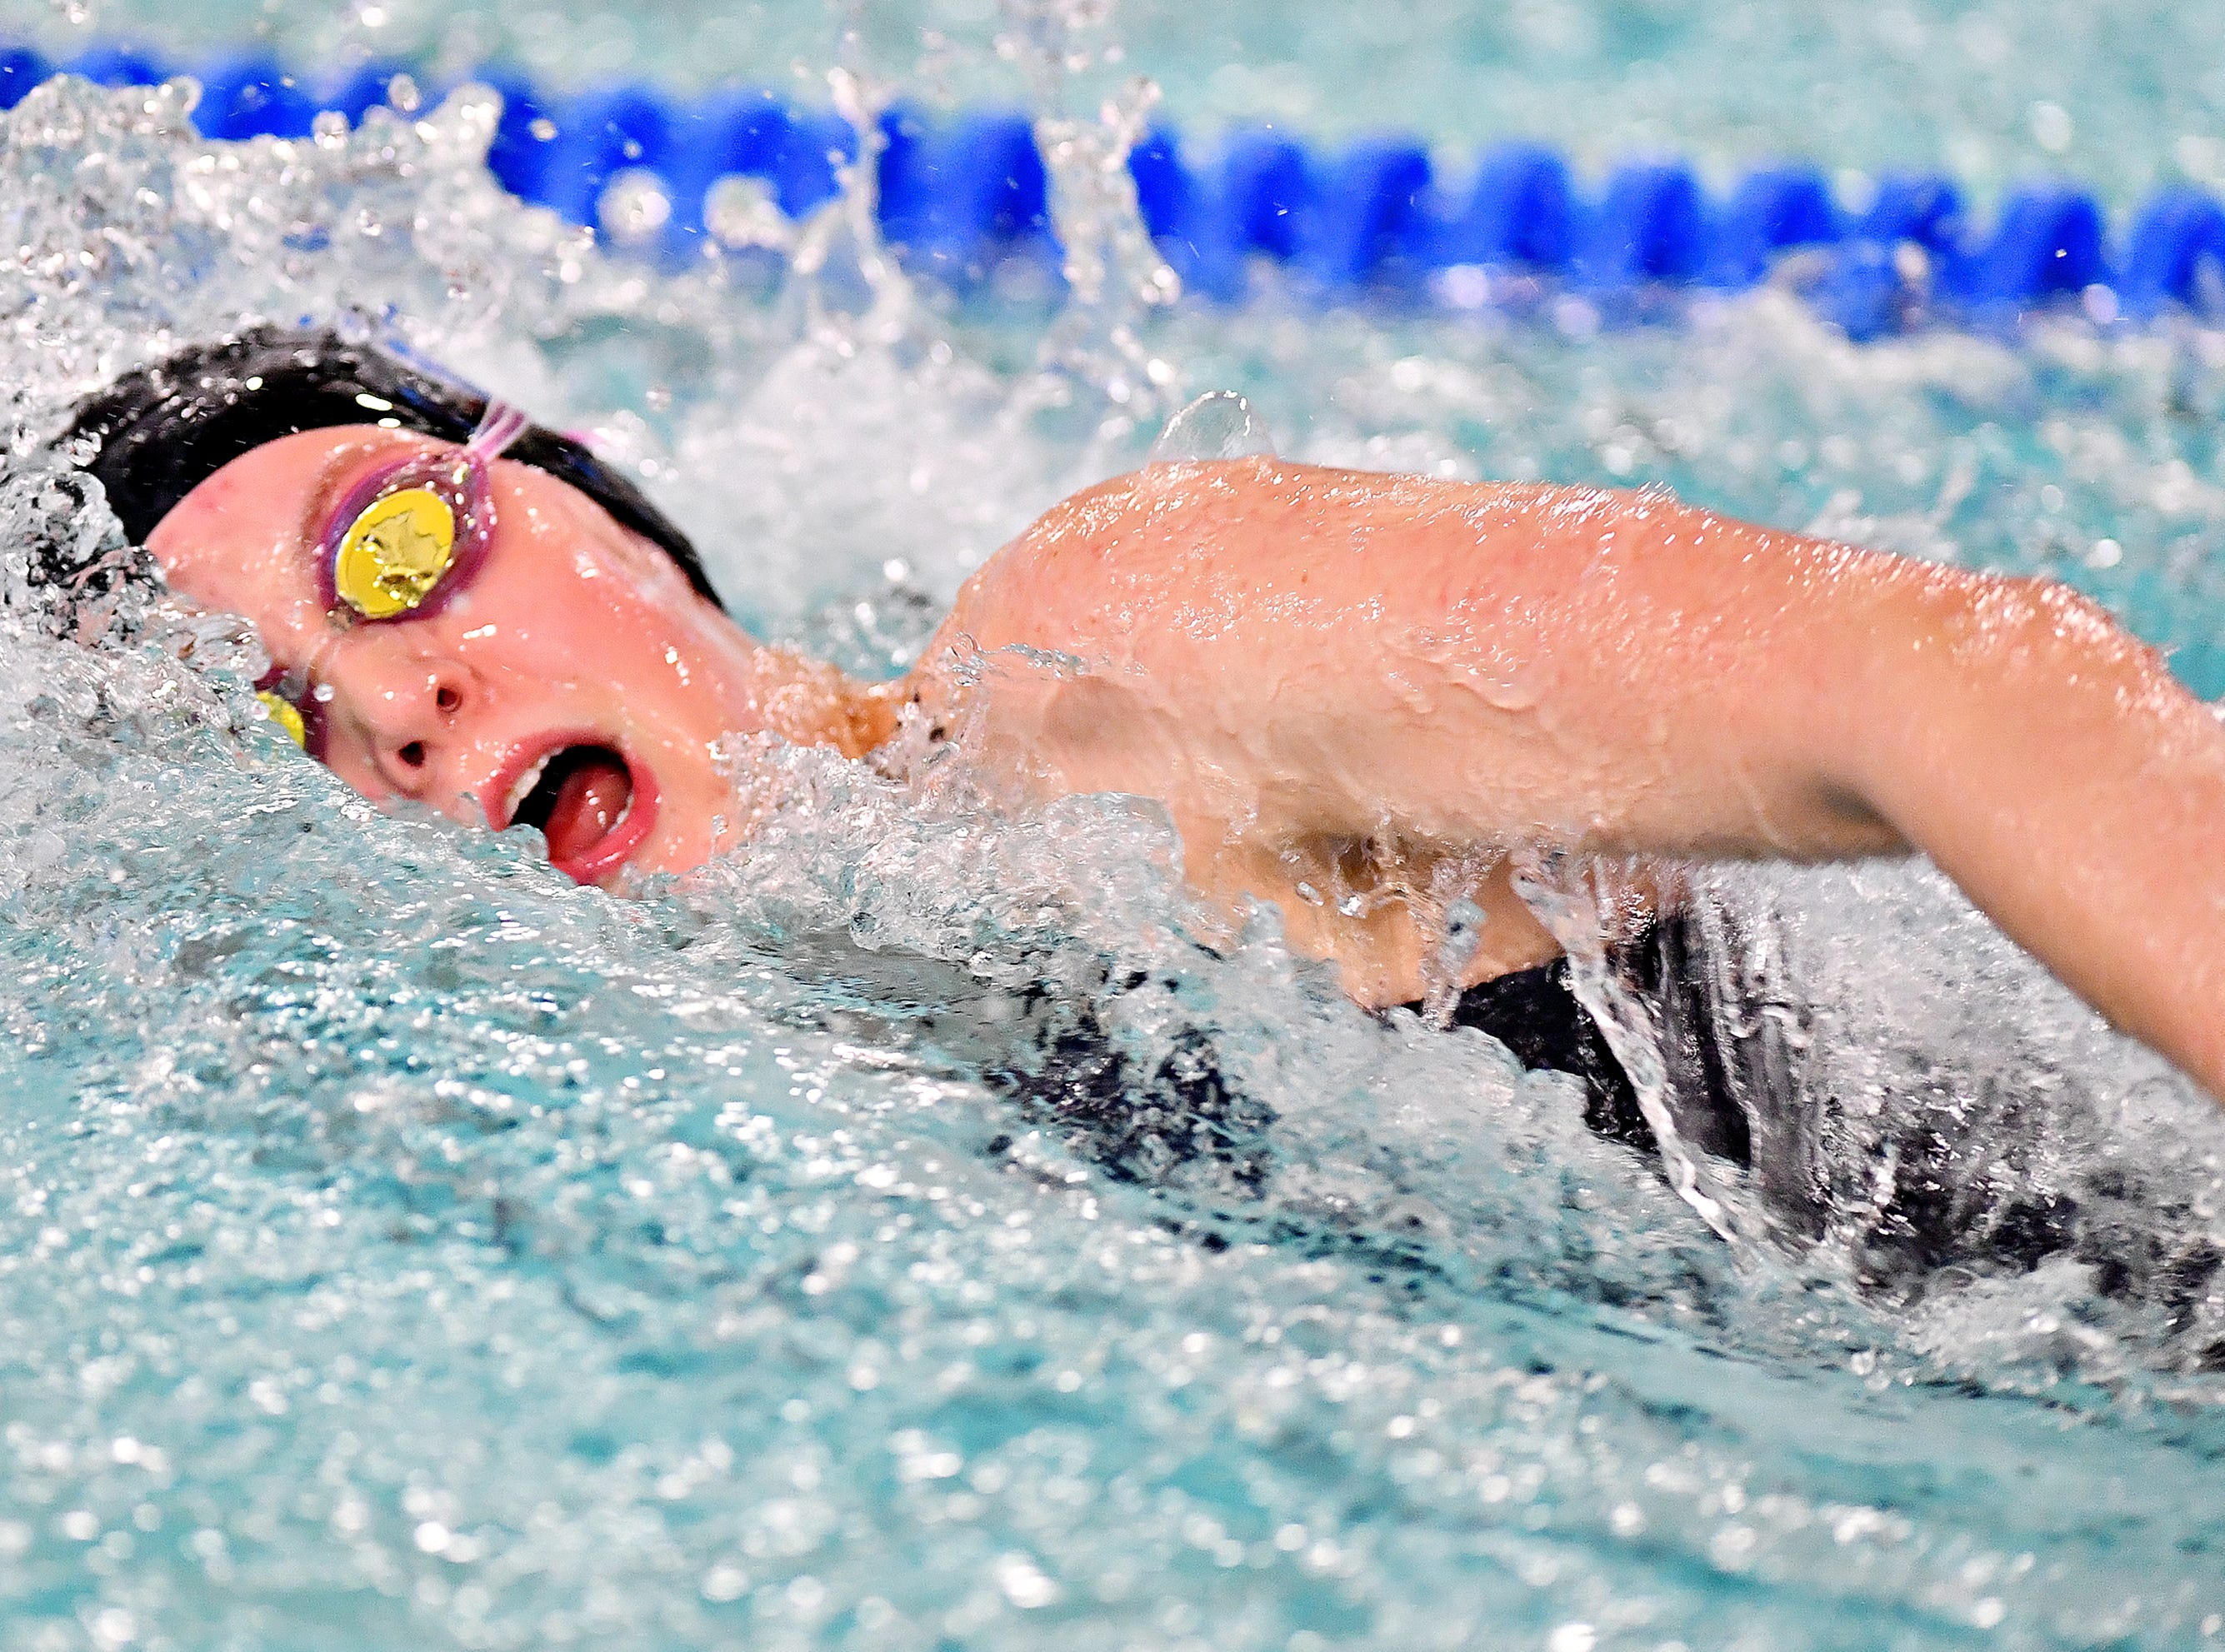 Dallastown's Samantha Trumble wins the 50 Yard Freestyle event at 25.58 during swimming action against Central York at Dallastown Area High School in York Township, Thursday, Jan. 10, 2019. Dawn J. Sagert photo